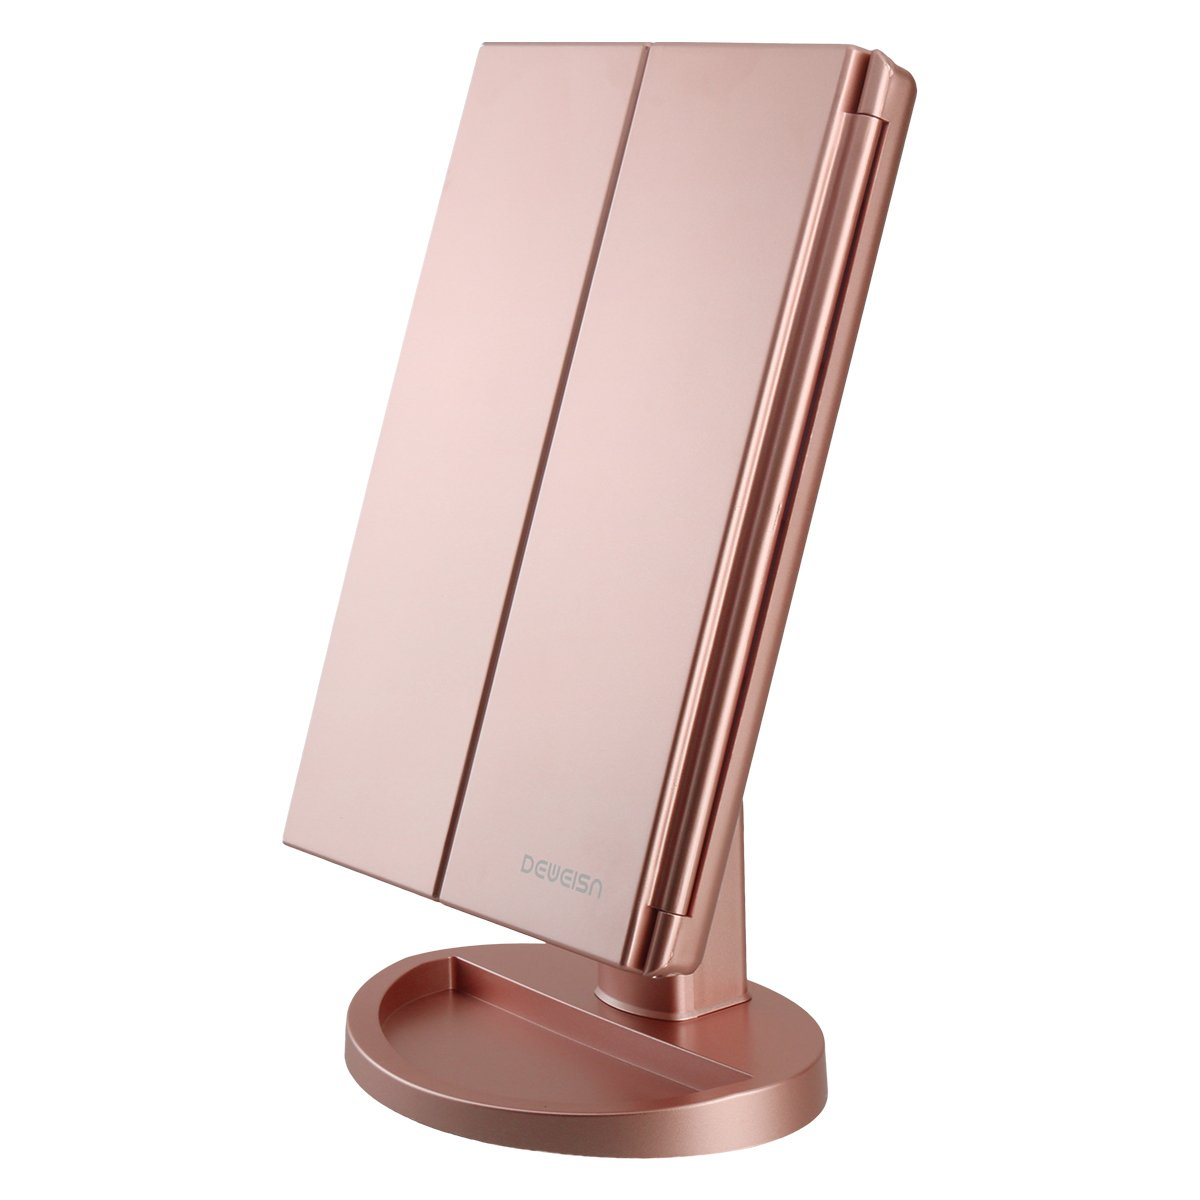 deweisn Tri-Fold Lighted Vanity Makeup Mirror with 21 LED Lights,3X/2X Magnification Mirror,Touch Sensor Switch, Two Power Supply Mode Tabletop Makeup Mirror,Travel Cosmetic Mirror (Rose Gold) by deweisn